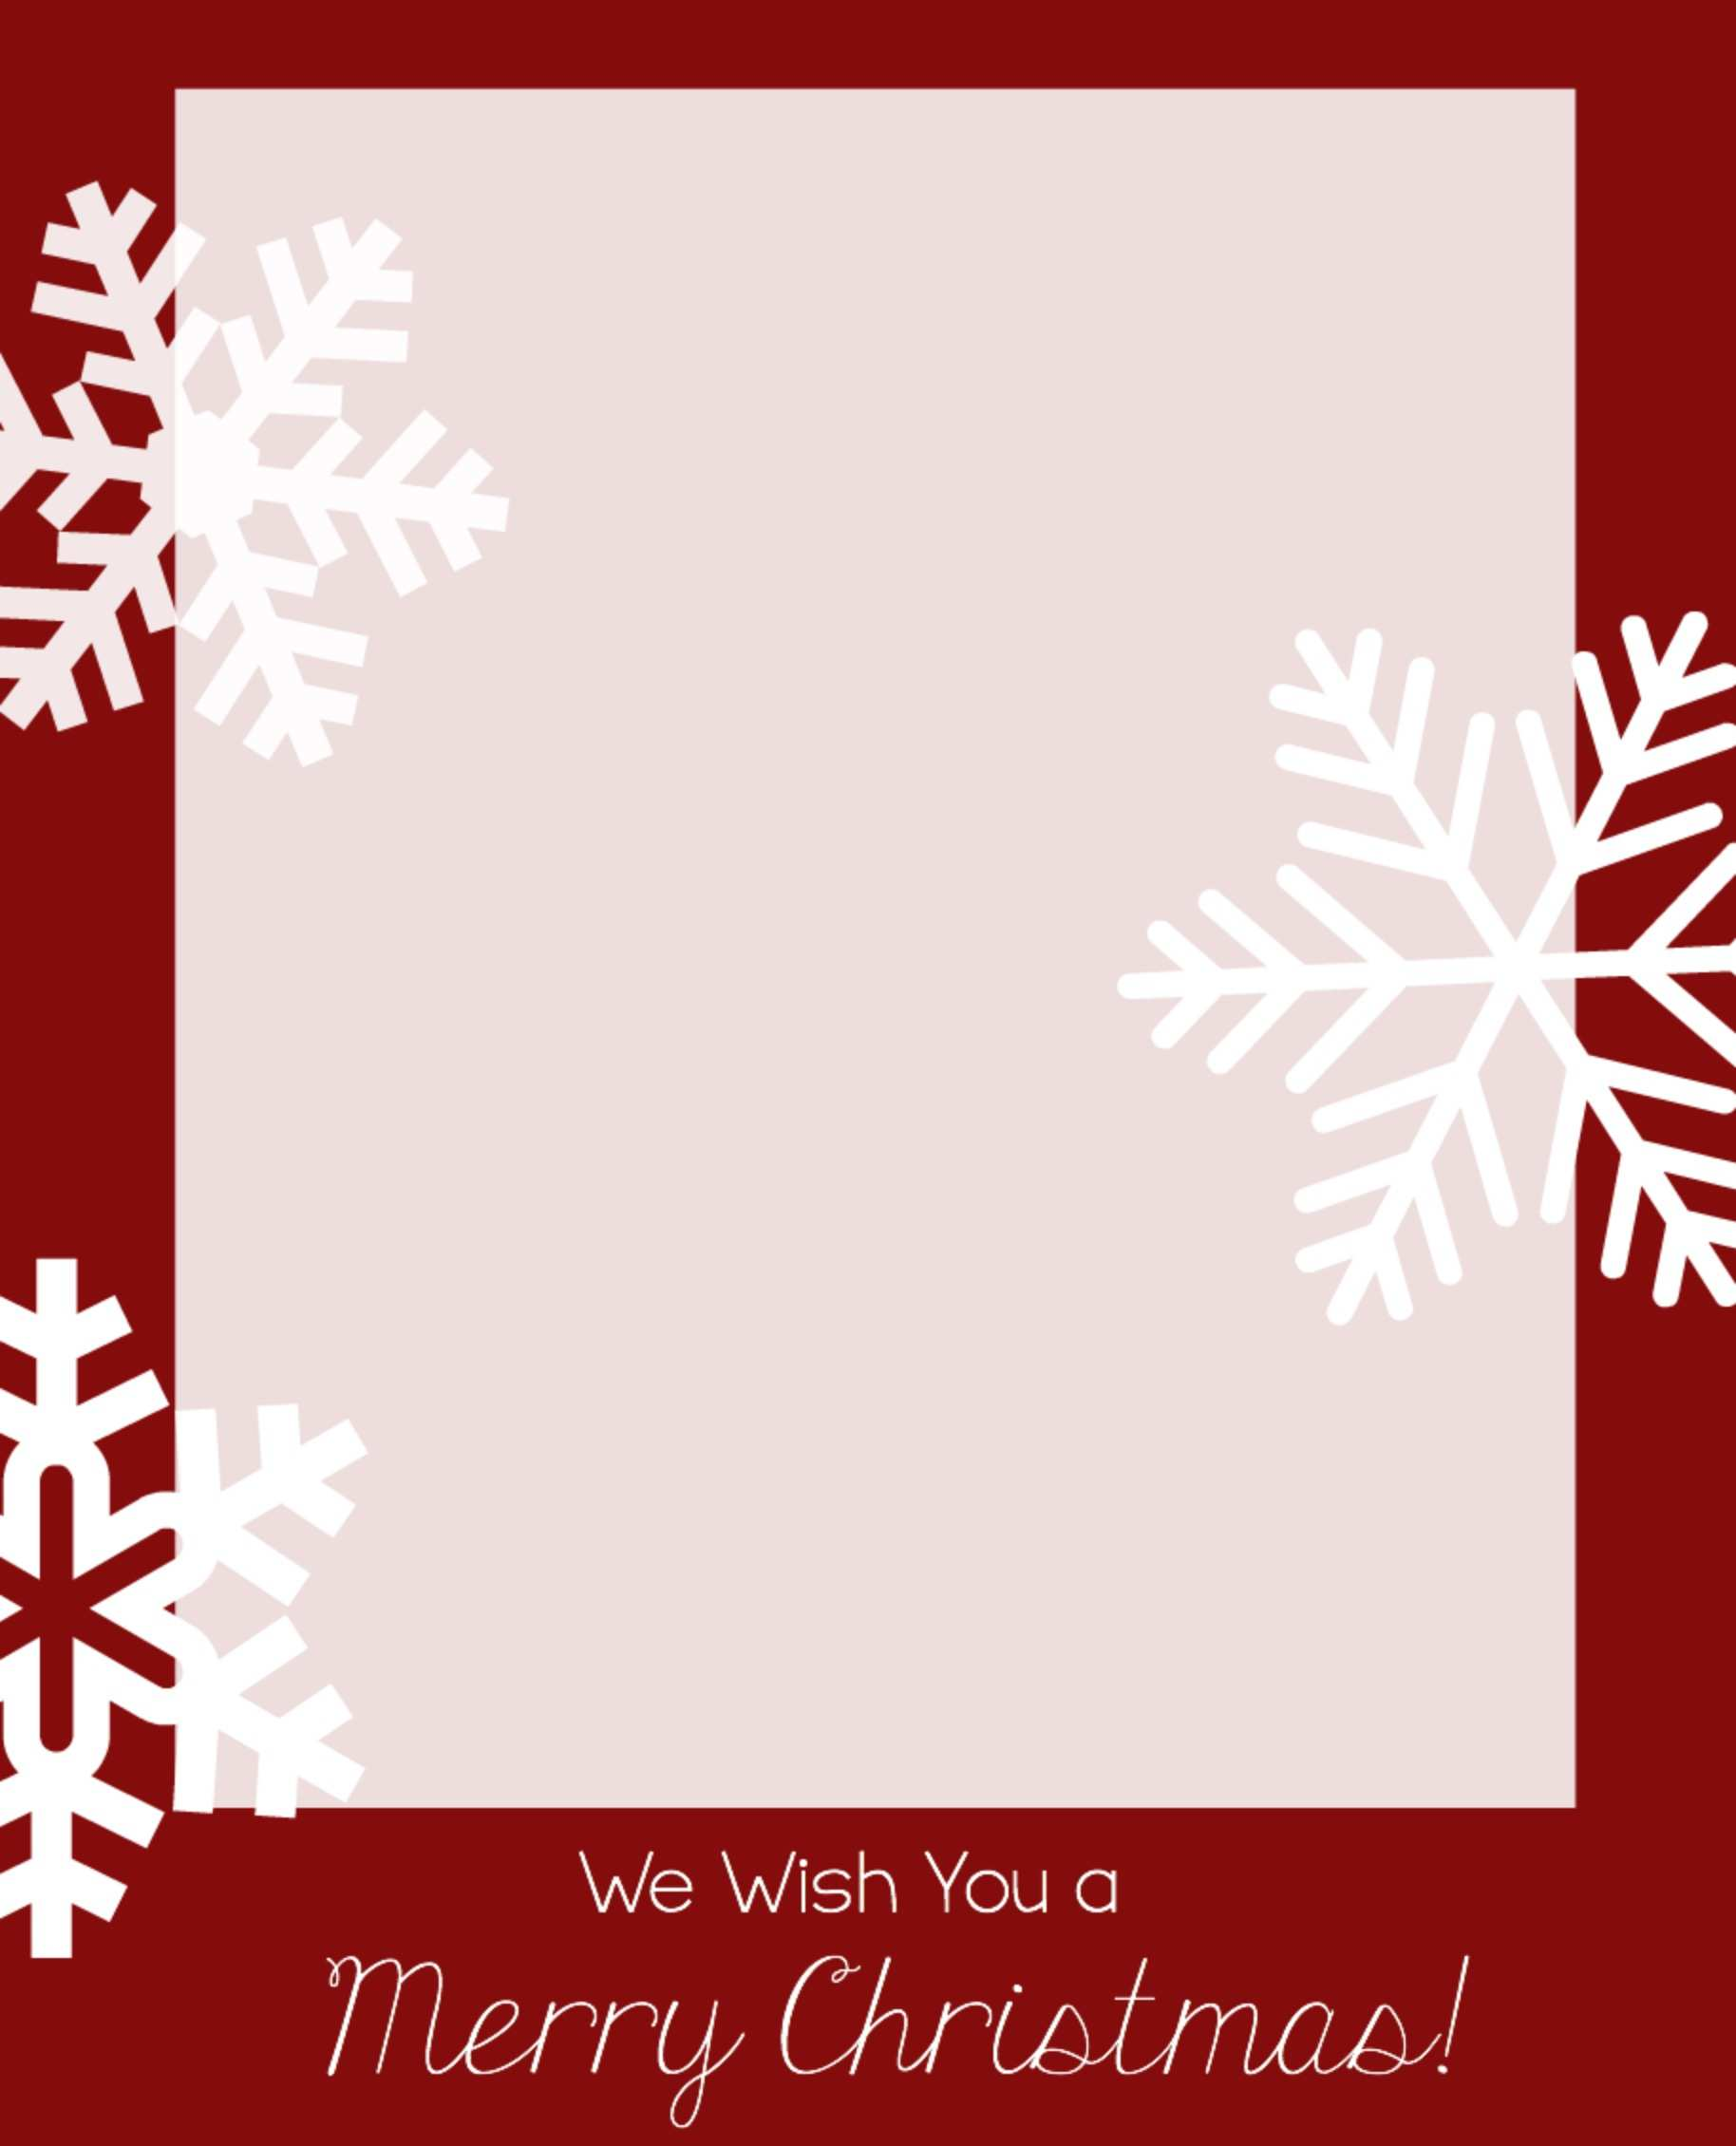 12 Format Christmas Card Template Png in Photoshop for Christmas Card Template Png